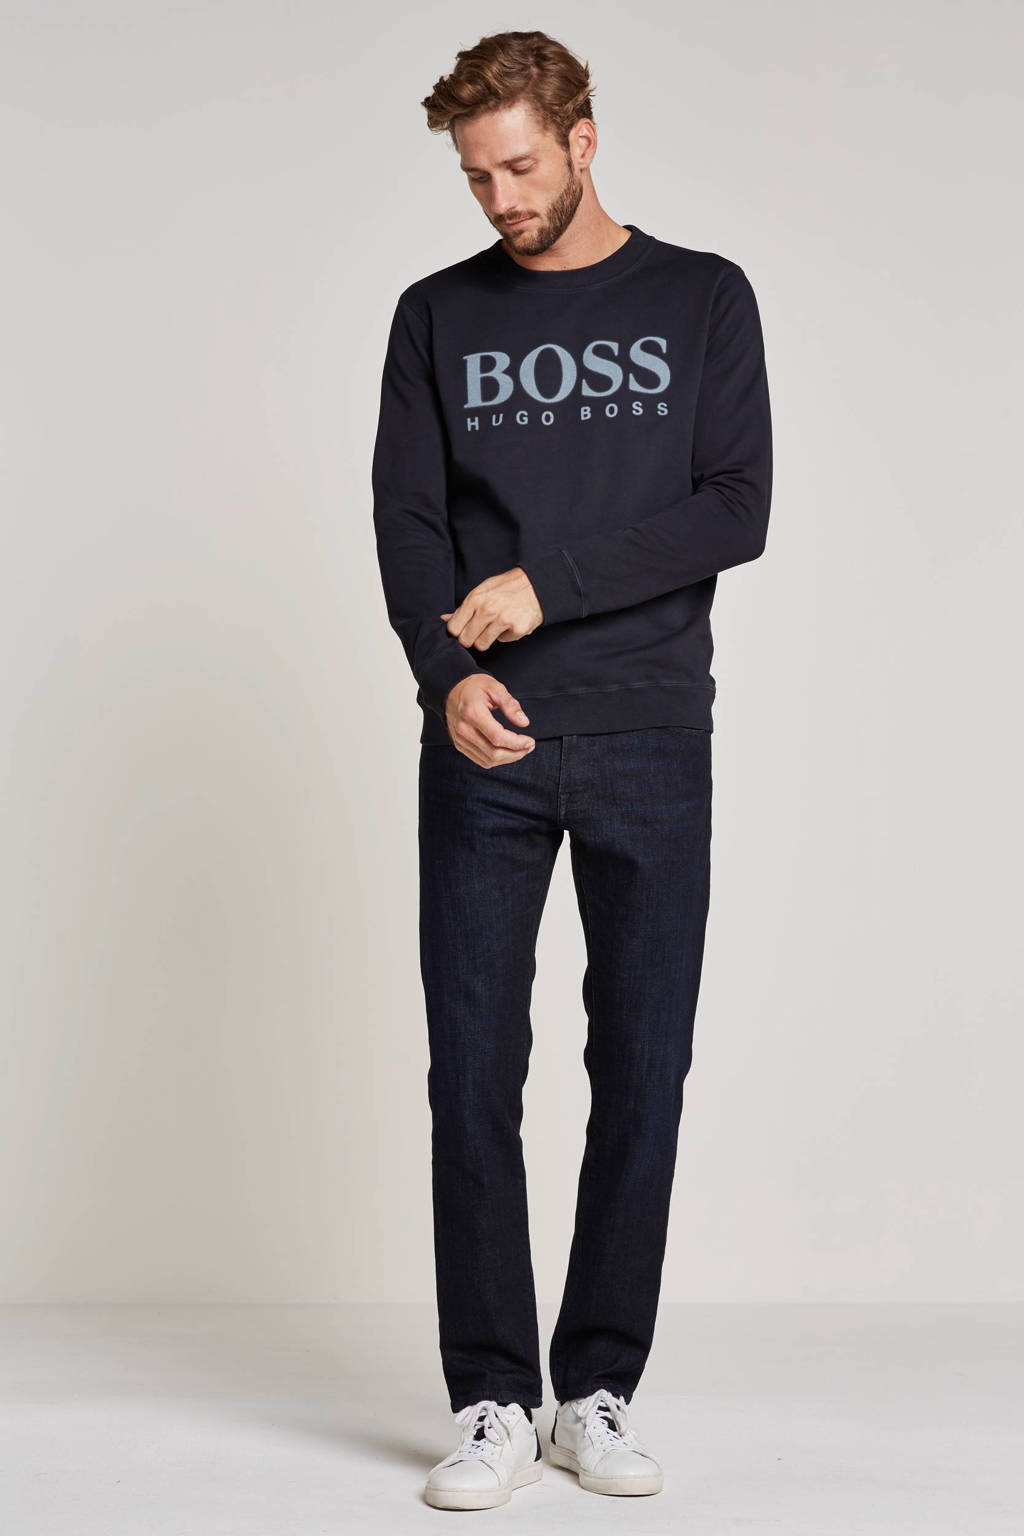 BOSS Casual regular fit jeans Maine navy, 410 Navy